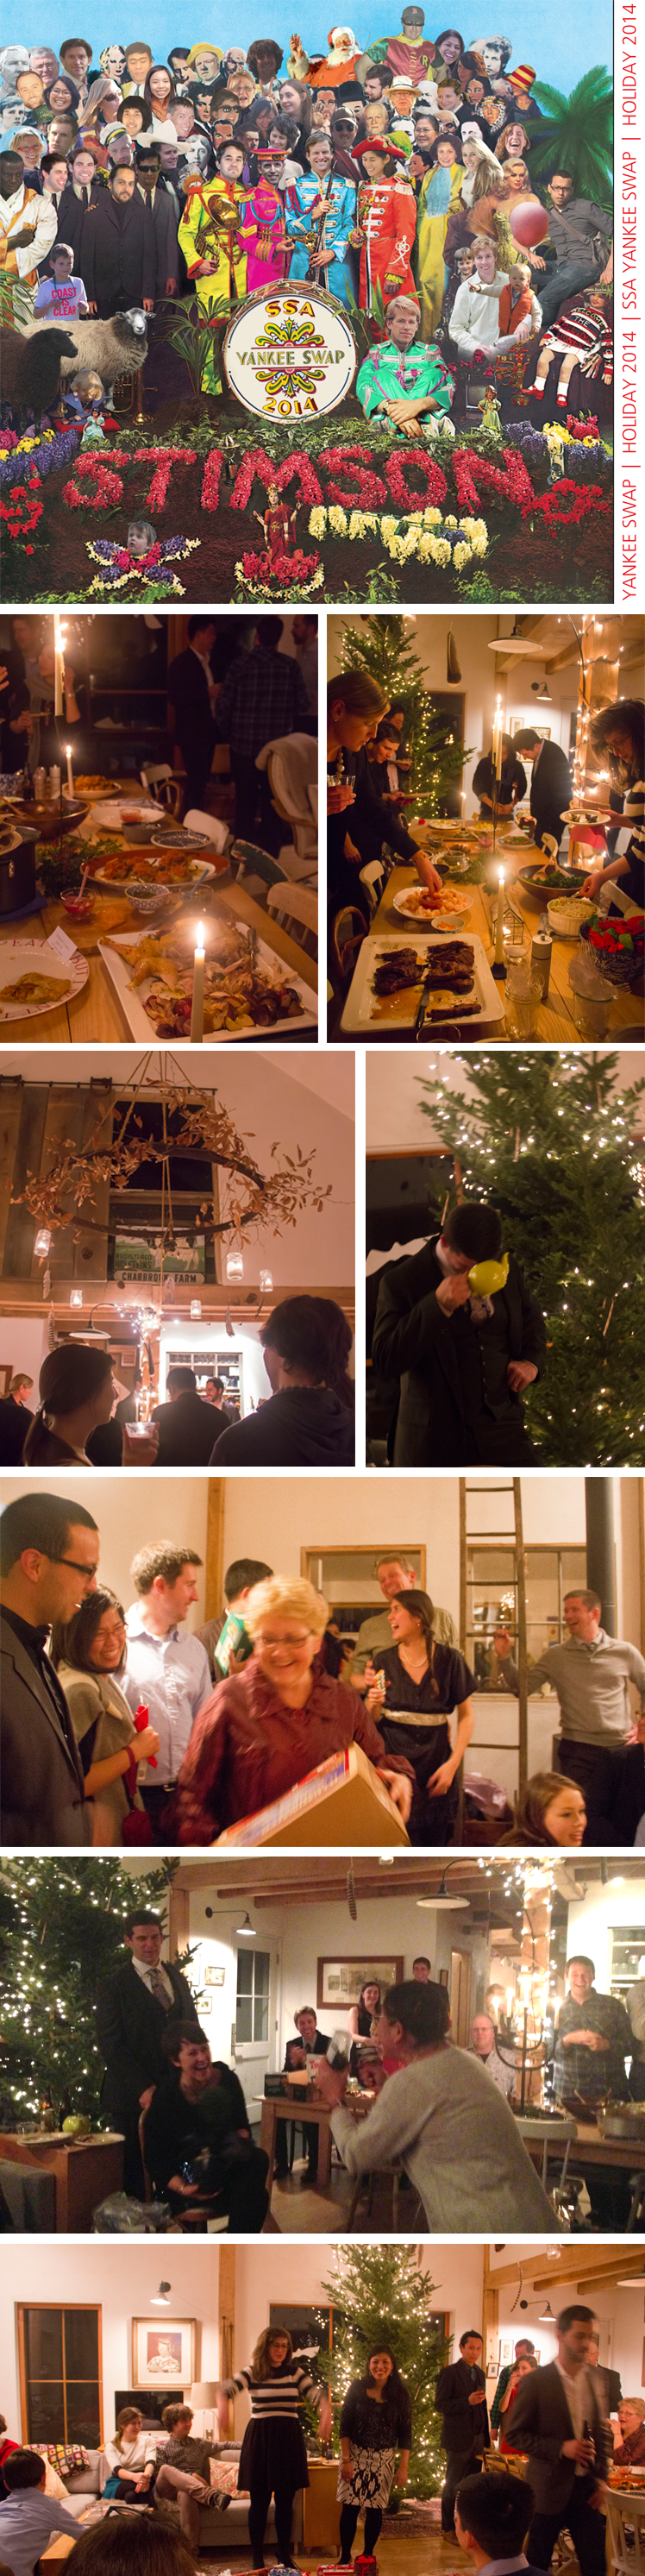 Charbrook Holiday Party 2014_0.jpg